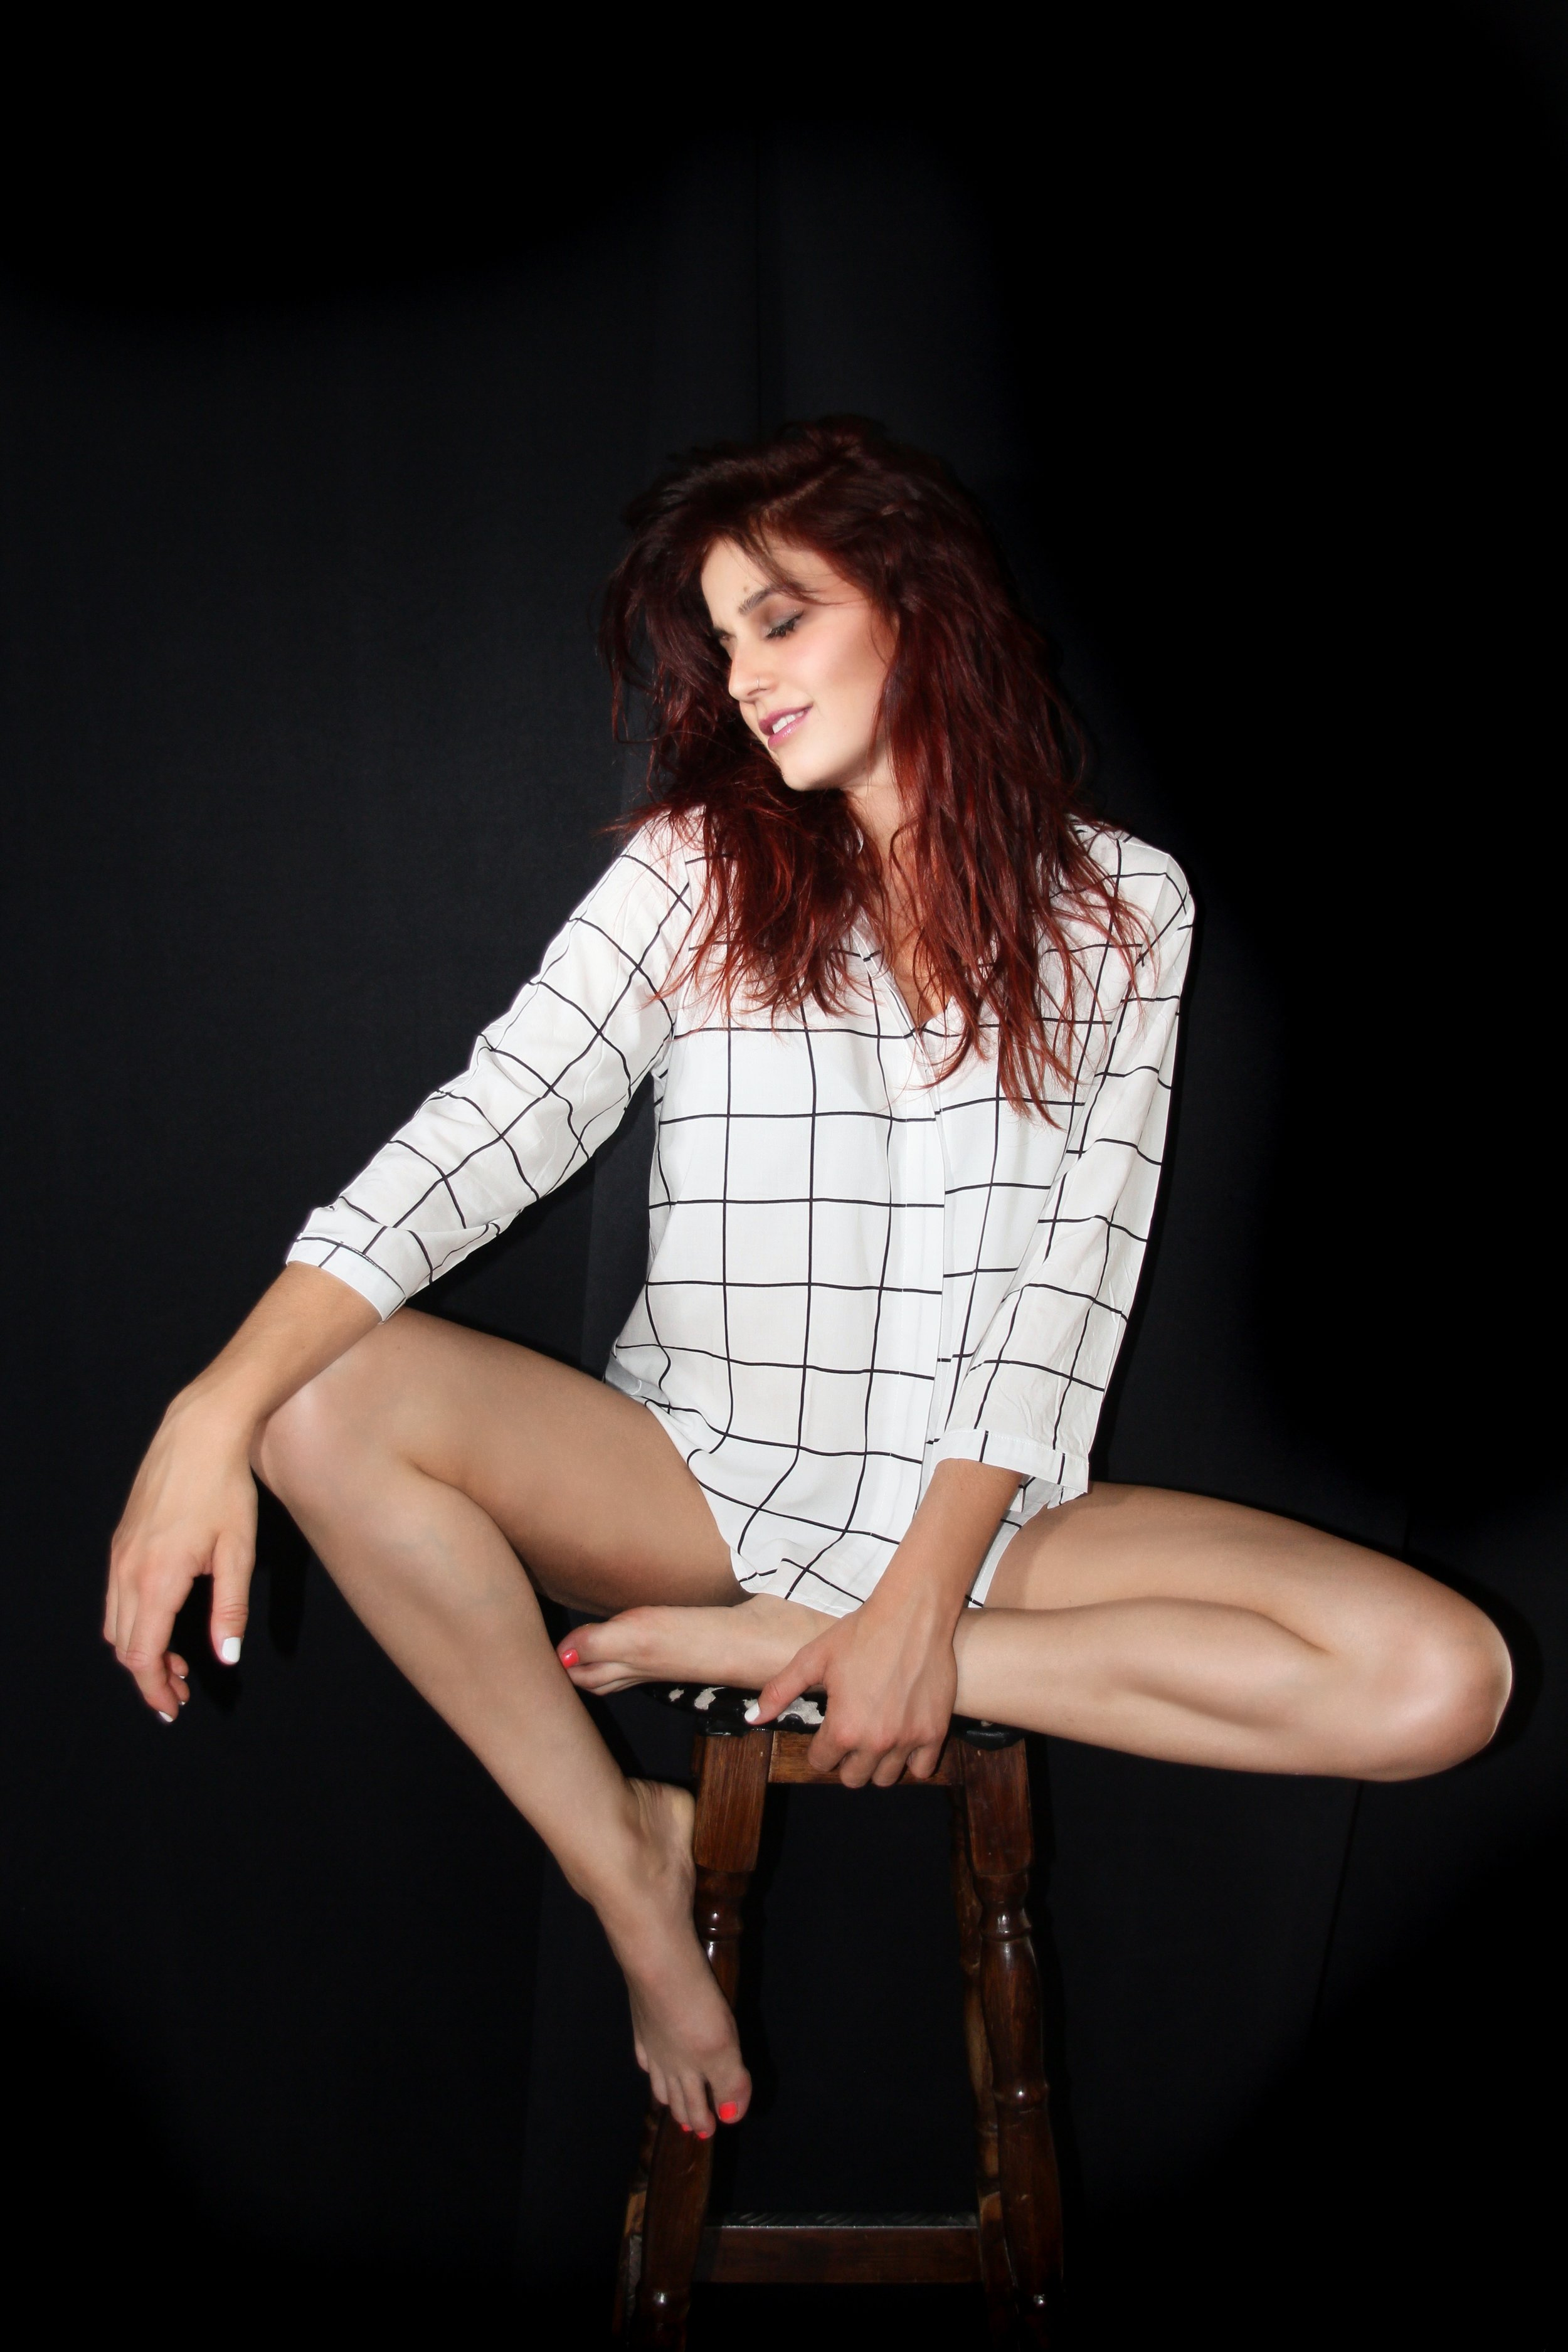 red head model sitting on a bar stool wearing nothing but a man's shirt in front of a black backdrop